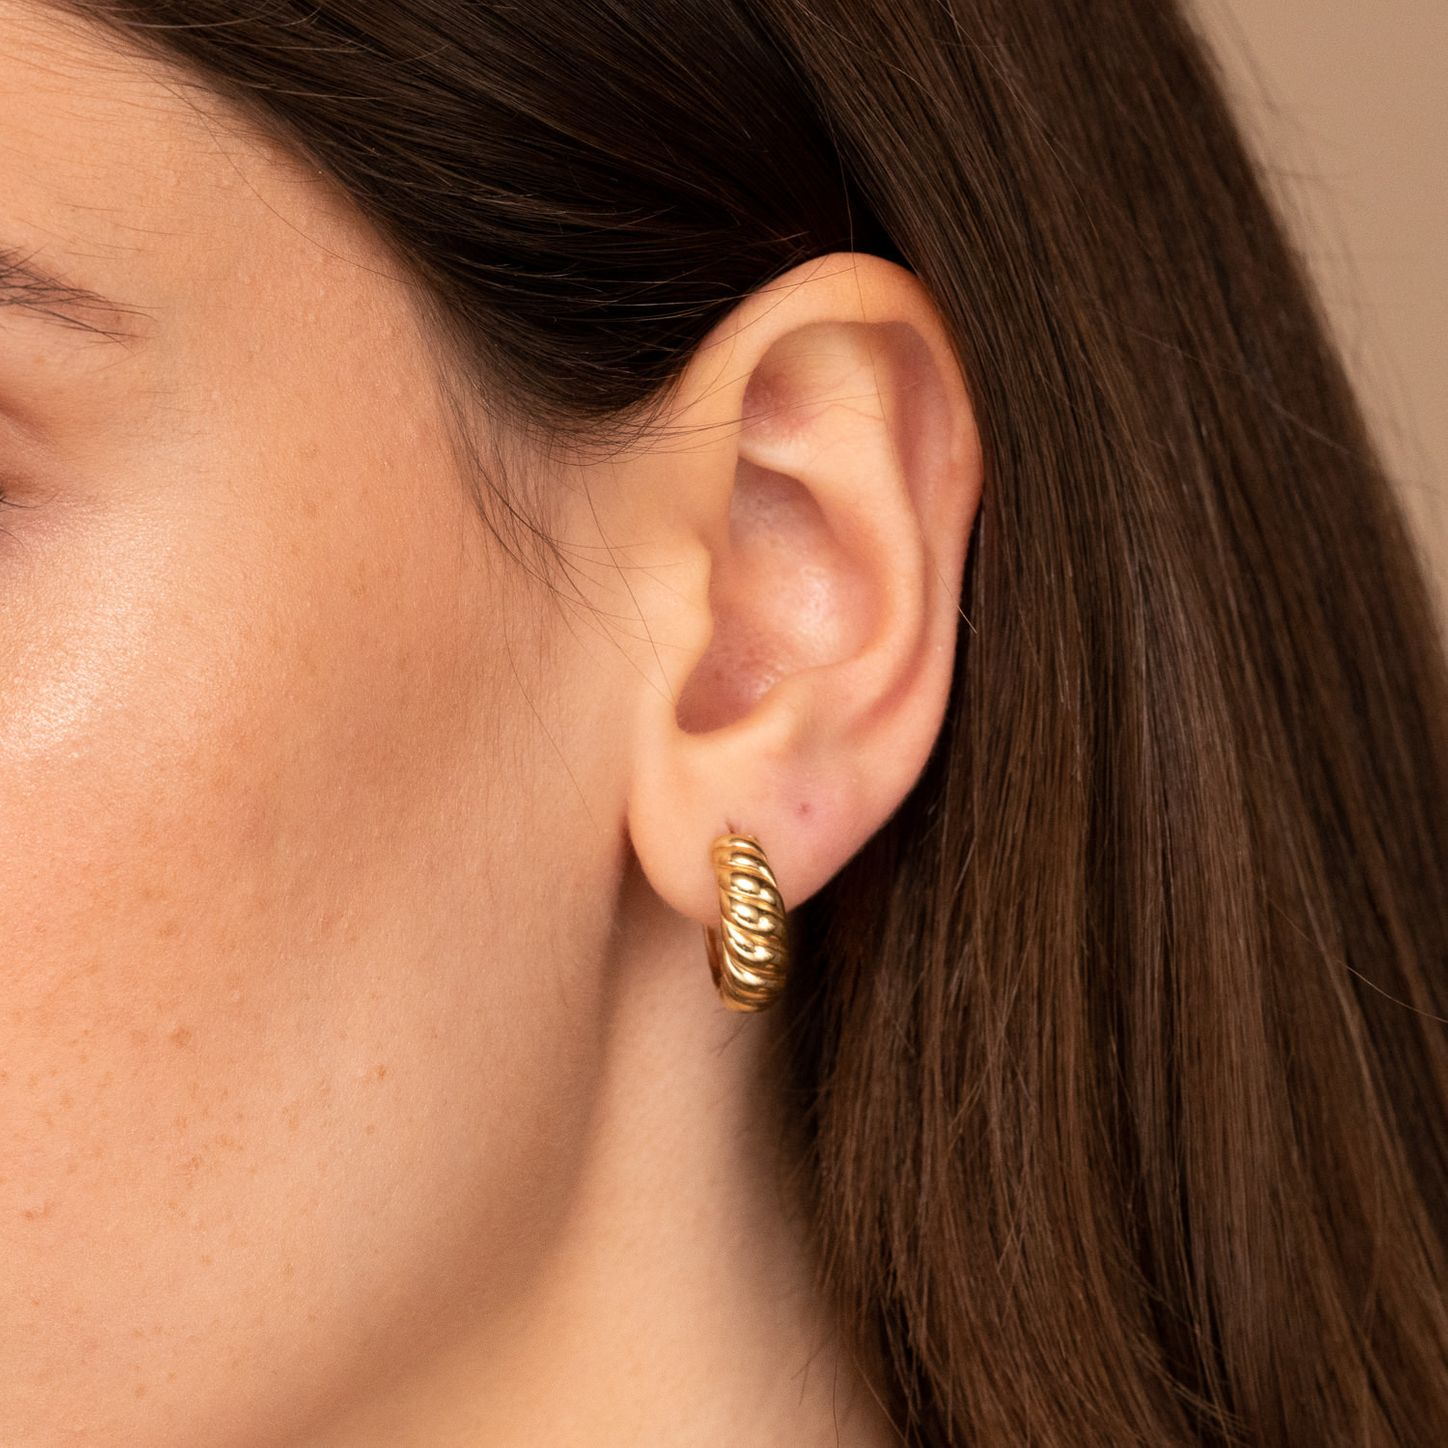 Gifts for Her Valentines Gift Flower Earrings Galentines Gift Gold Earrings Dainty Gold Flower Patterned Earrings Jewelry for Her